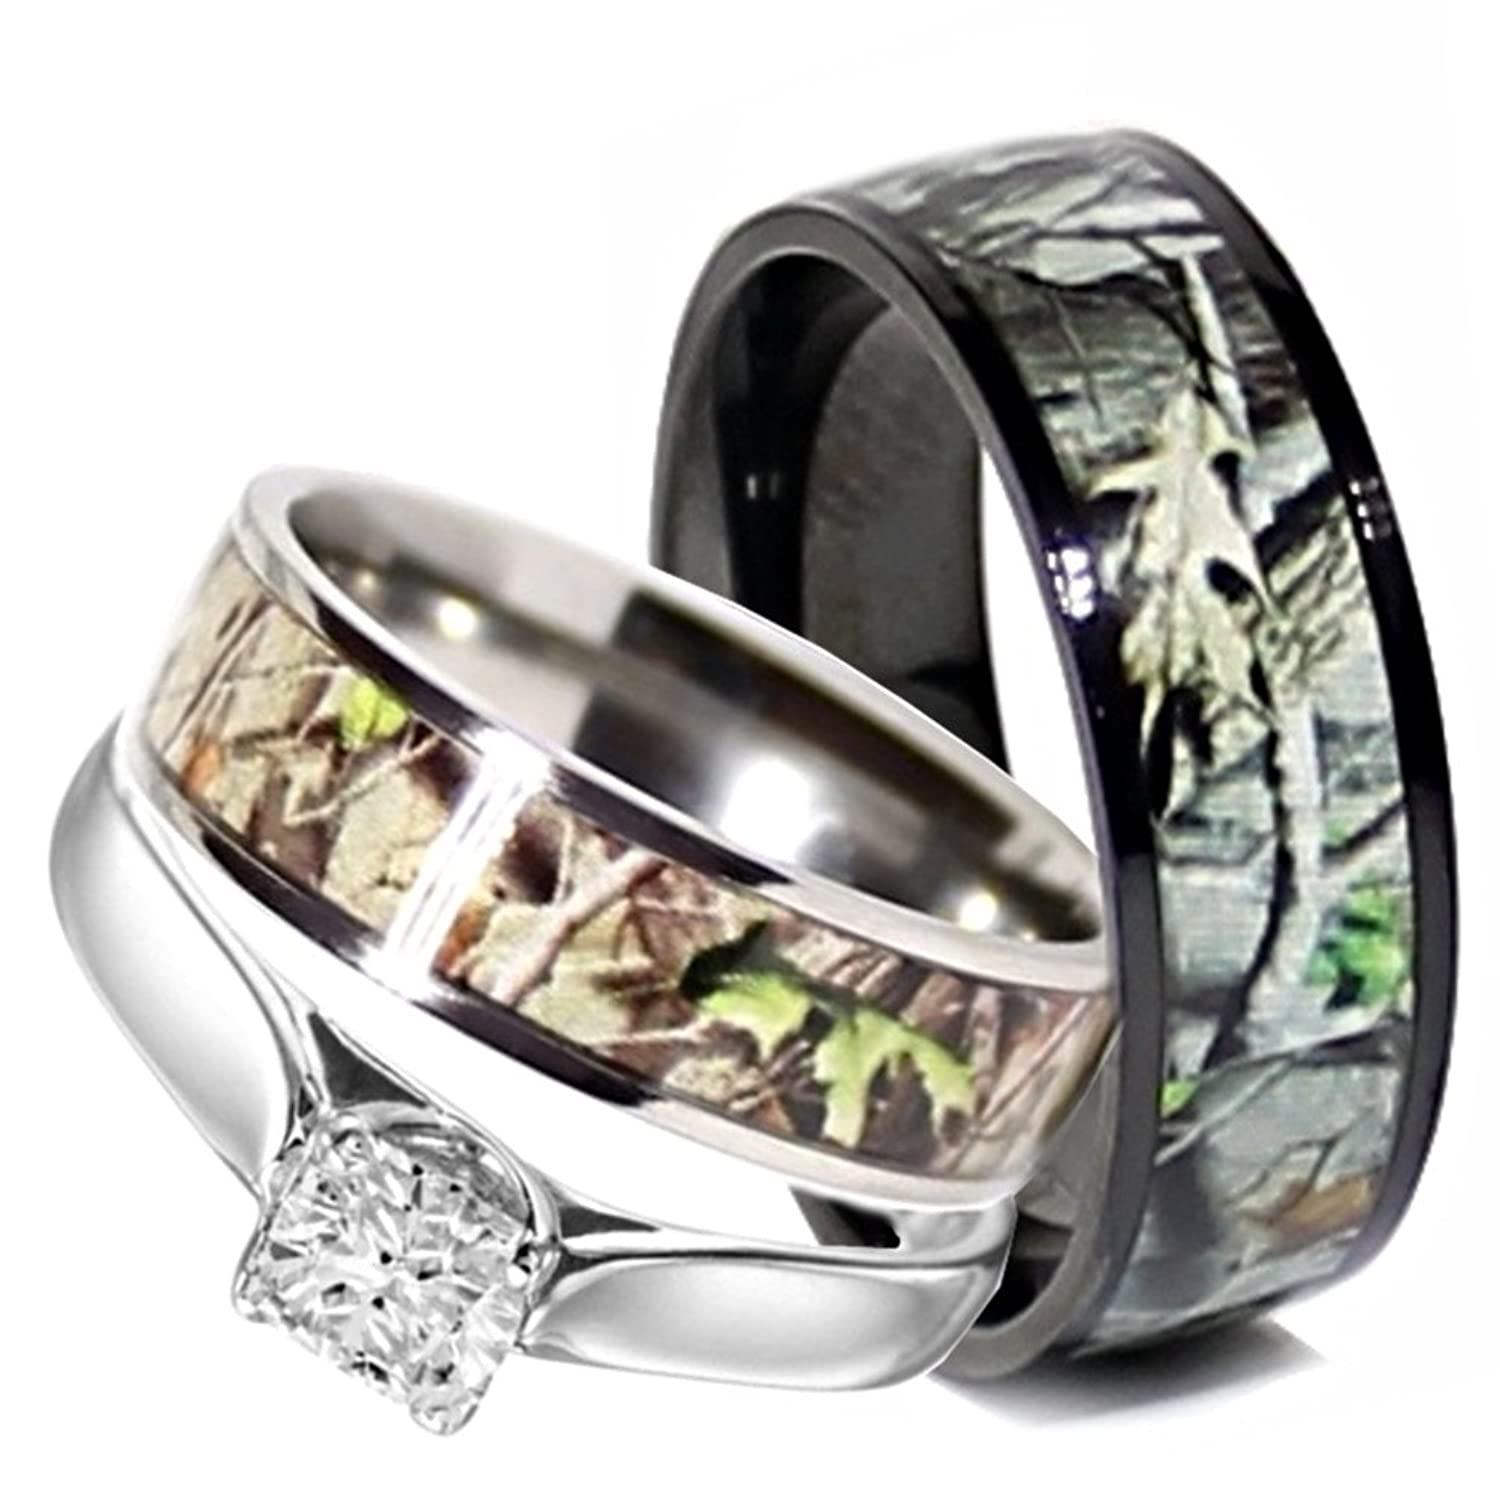 Amazon Camo Wedding Rings Set His And Hers 3 Sterling Silver Titanium Size Men 10 Women Jewelry